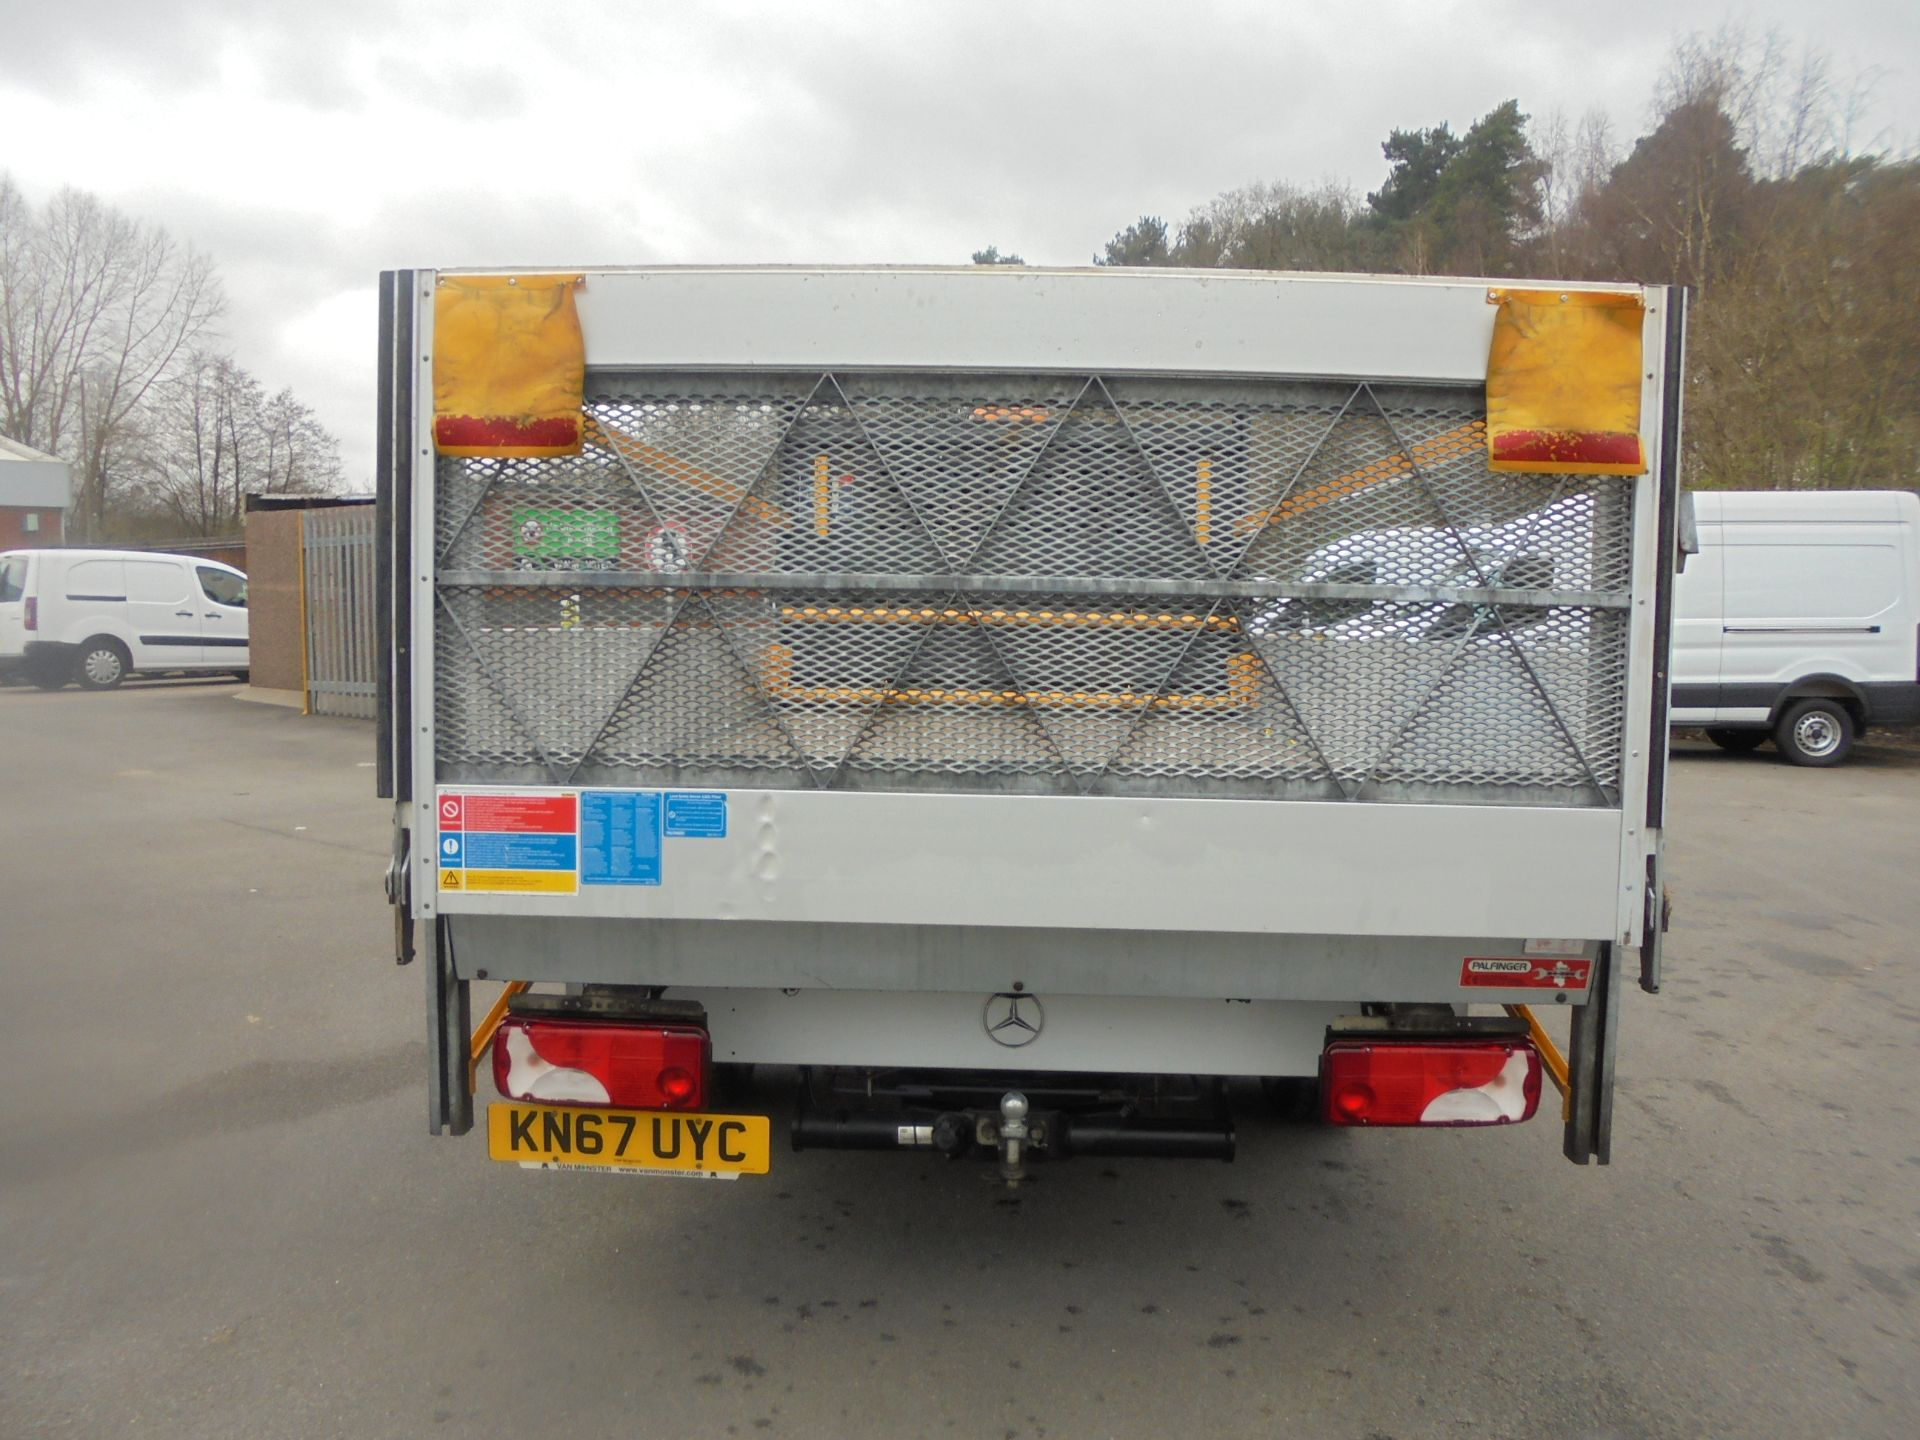 2017 Mercedes-Benz Sprinter 3.5T Single Cab Flatbed (KN67UYC) Image 7